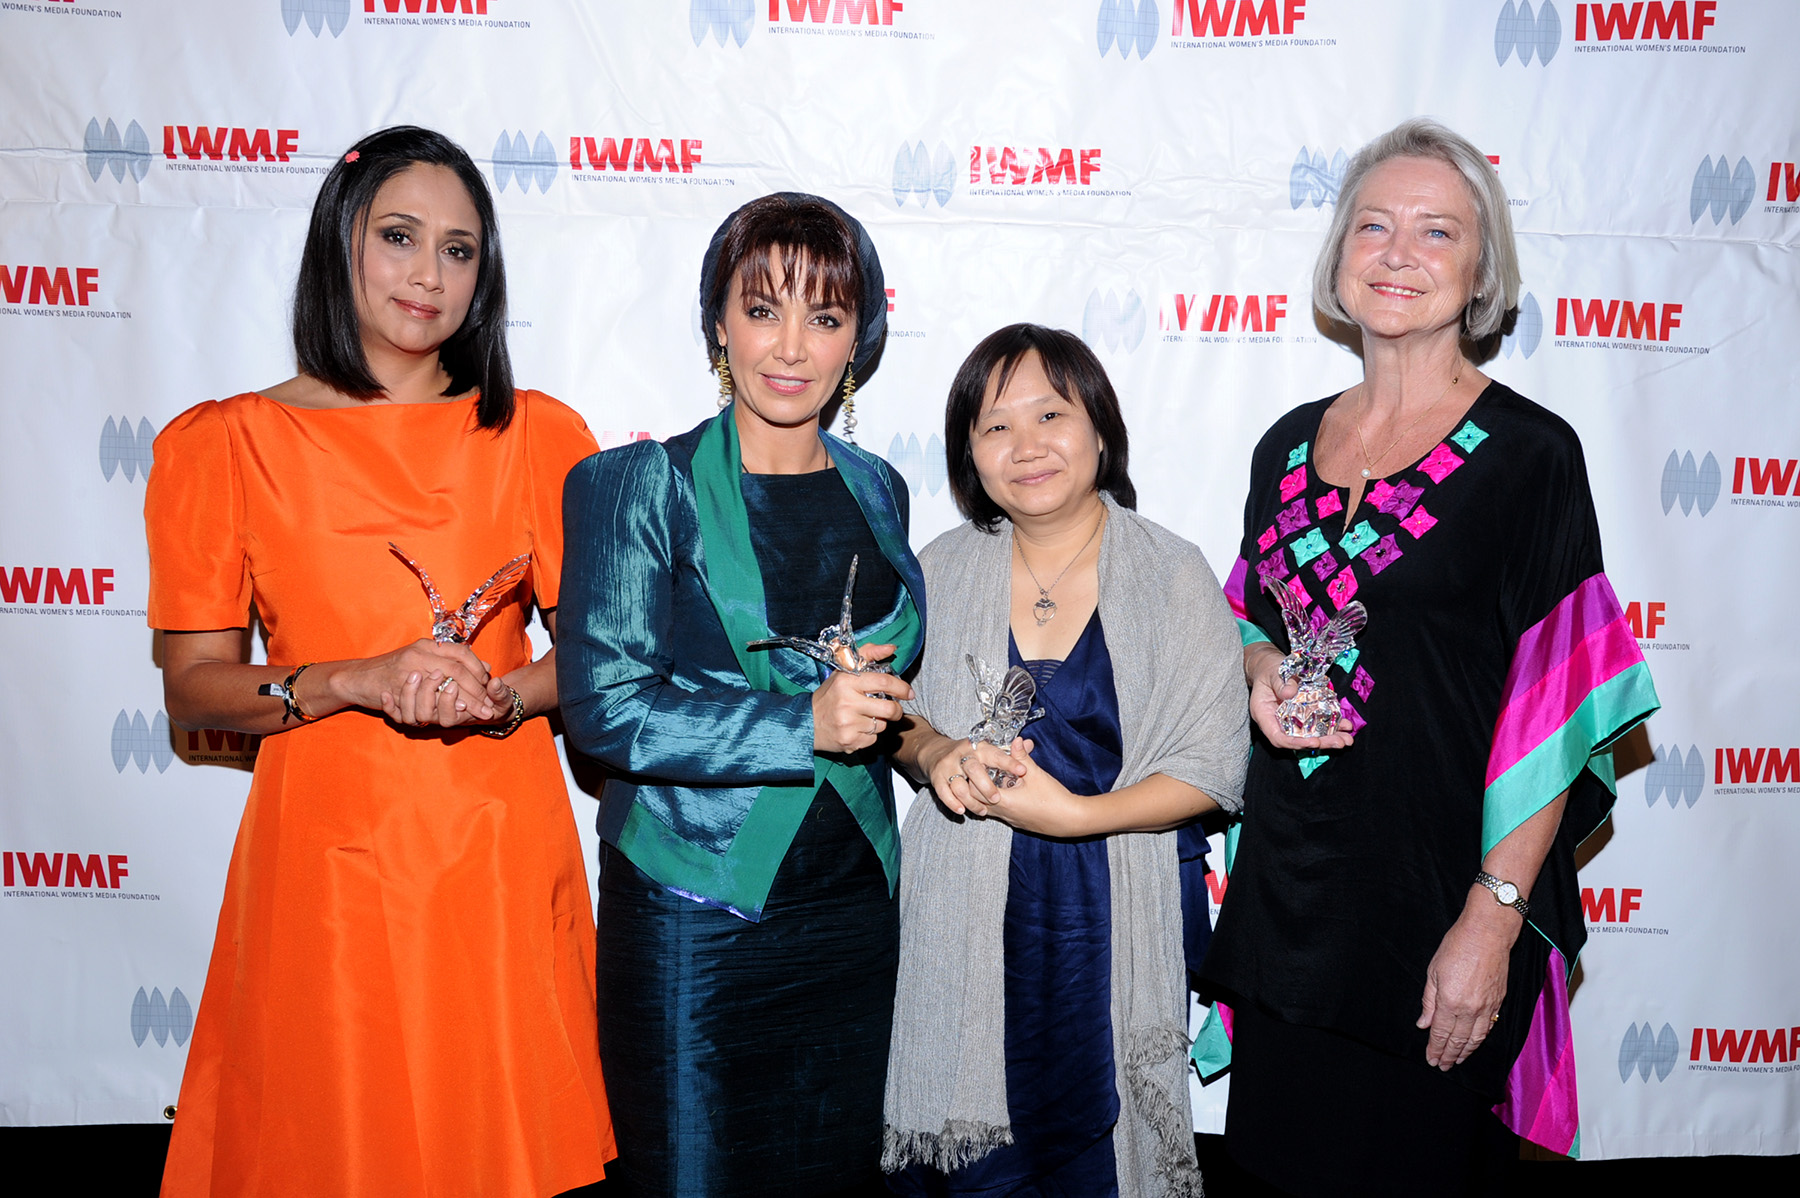 Female journalists honored for exemplifying courage in news reporting